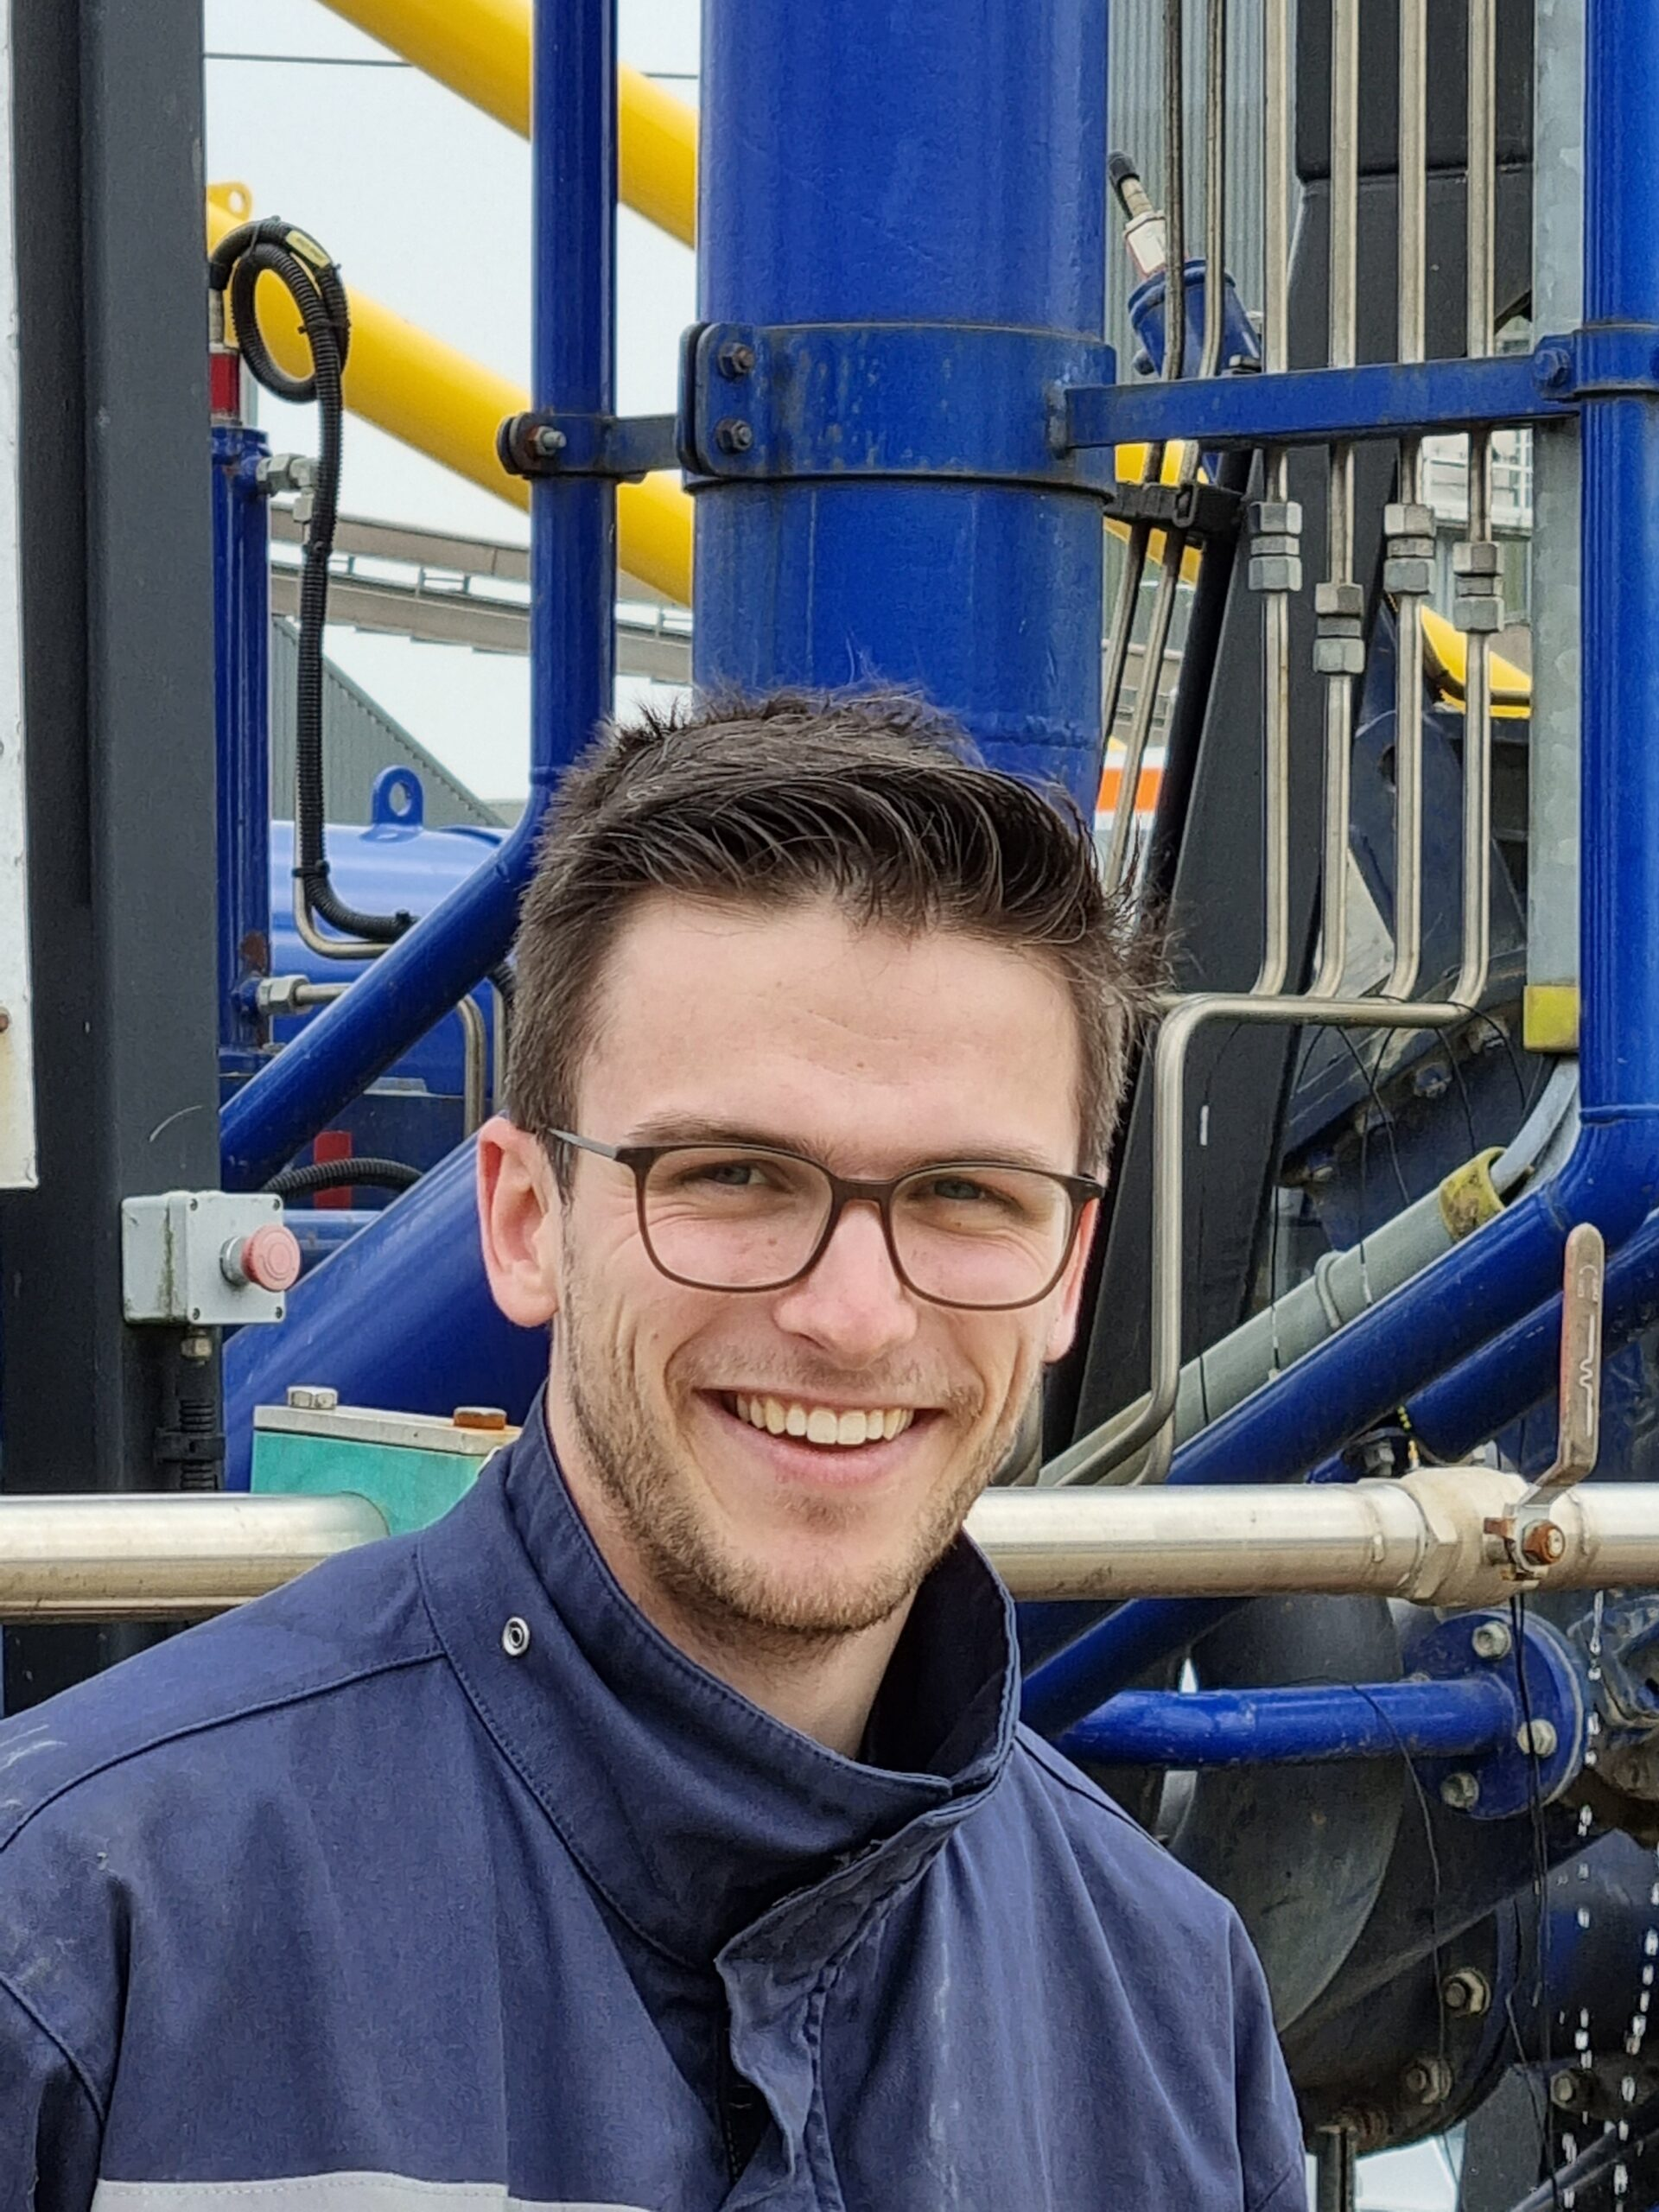 Wim Kleermaker during the practical phase of his graduation in dredging